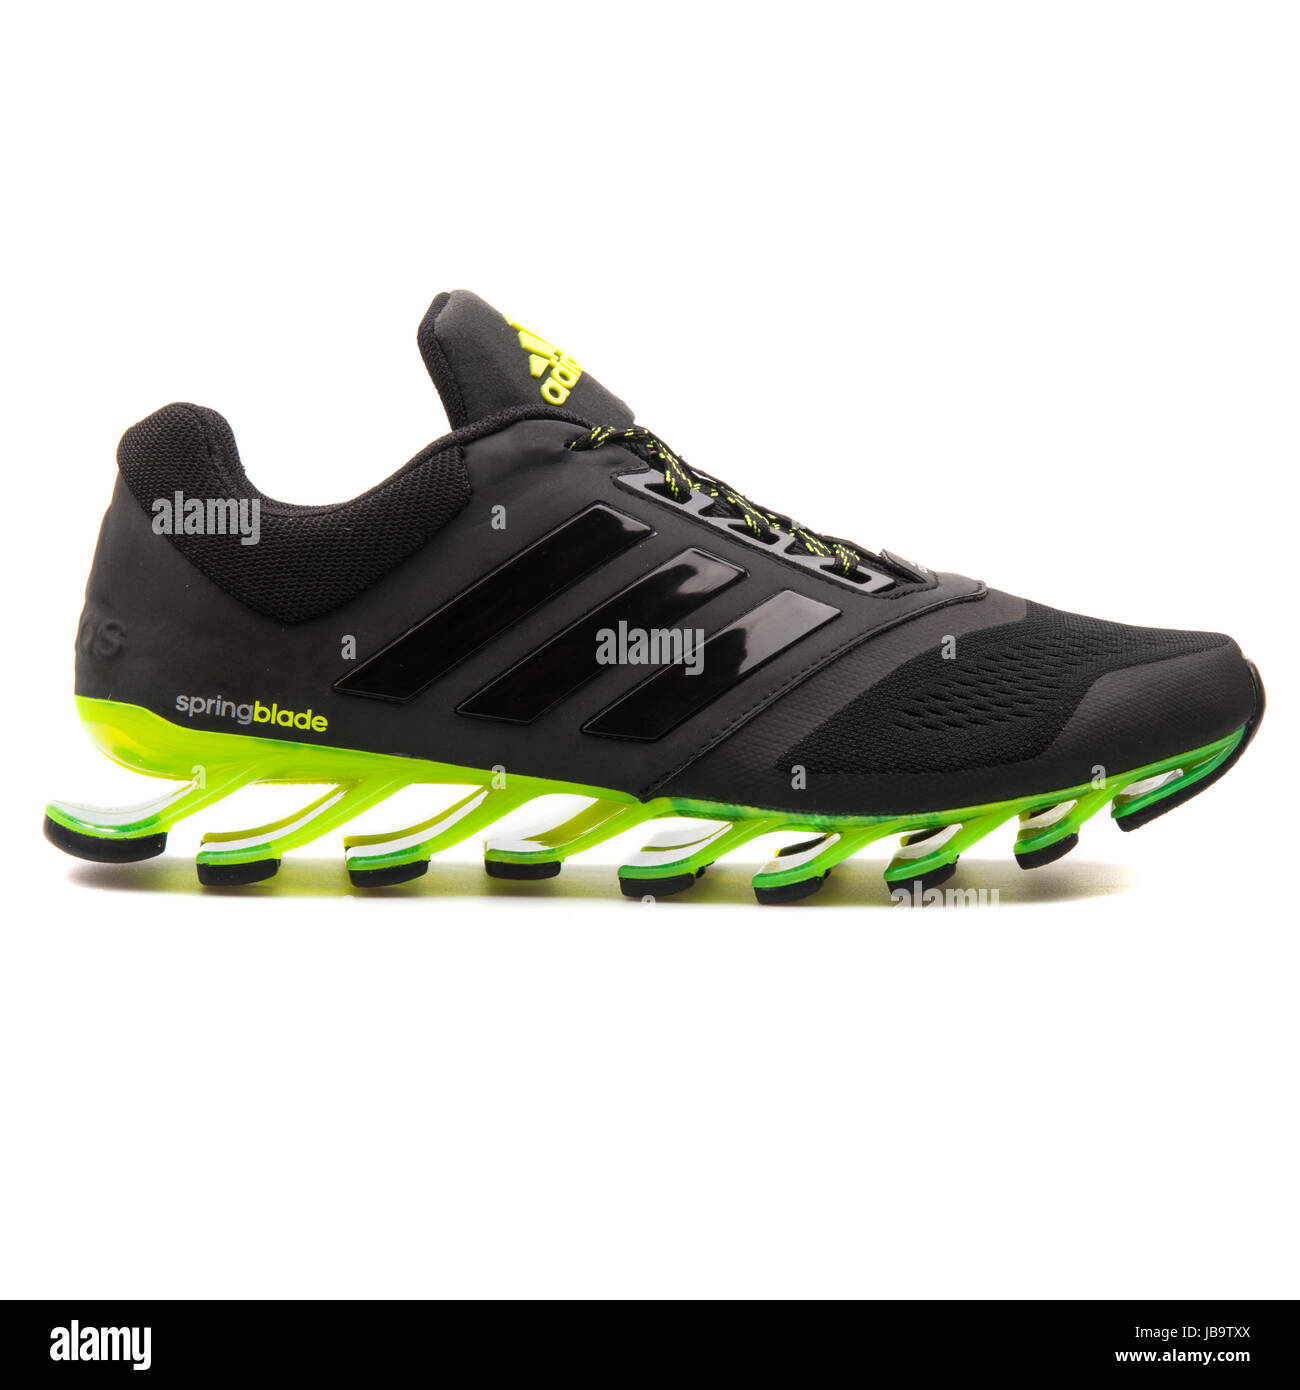 on sale e066b 48d23 Adidas Springblade Drive 2 m Black and Green Men's Running ...